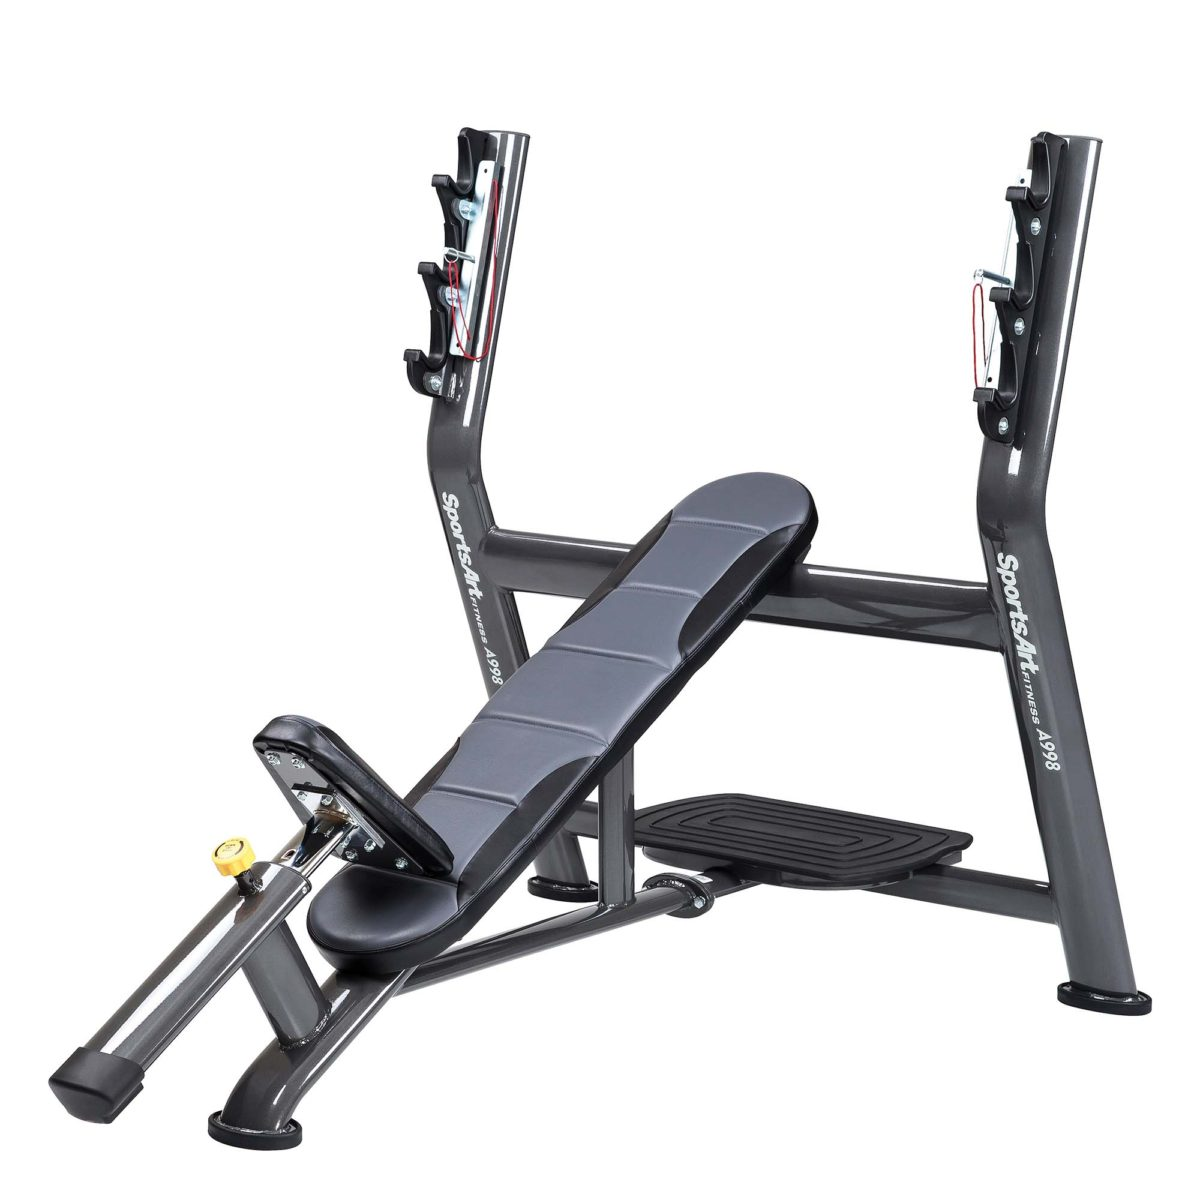 SportsArt S-Free Weight Series